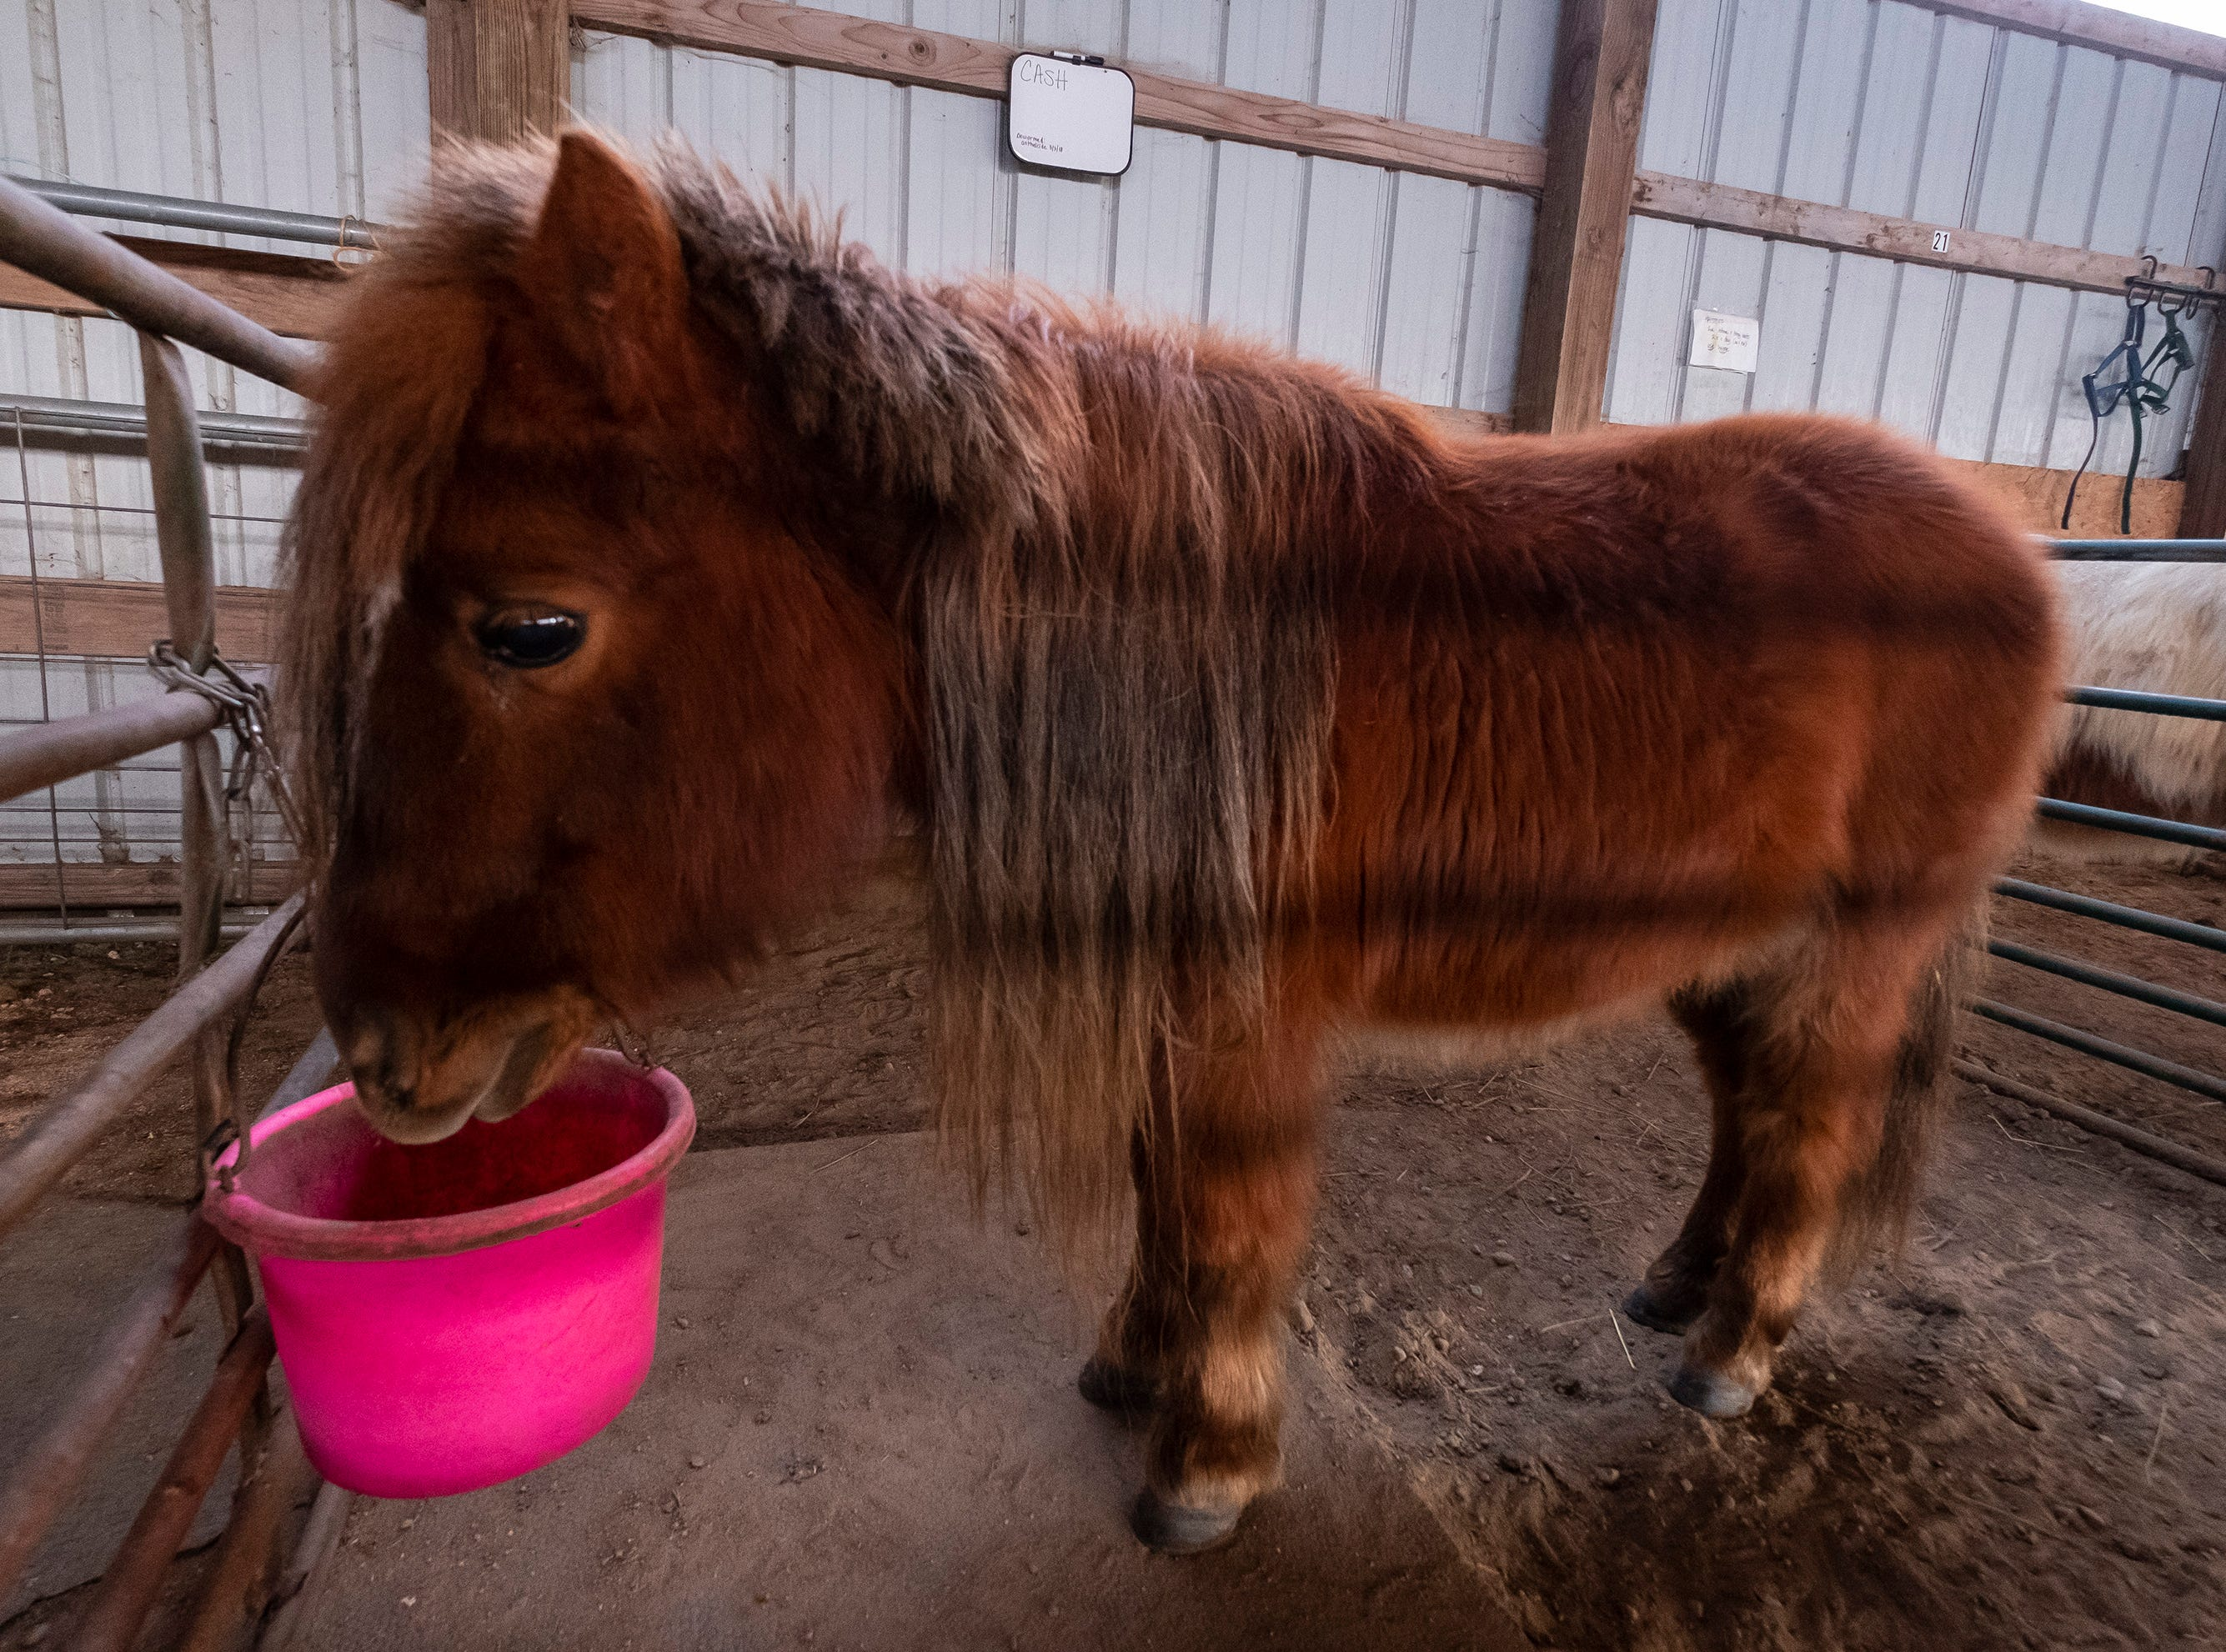 "Cash, one of the miniature horses rescued by Tammie Miller, eats in one of the barn's pens. Cash was rescued about a year ago from a kill pen in New Jersey. Miller says his name is indicative of what it took to bring him from New Jersey to her farm in Emmett, as he was one of the farm's most expensive rescues. ""He's handsome,"" said Miller. ""I can't believe he's still here... he'd make a great show horse."""